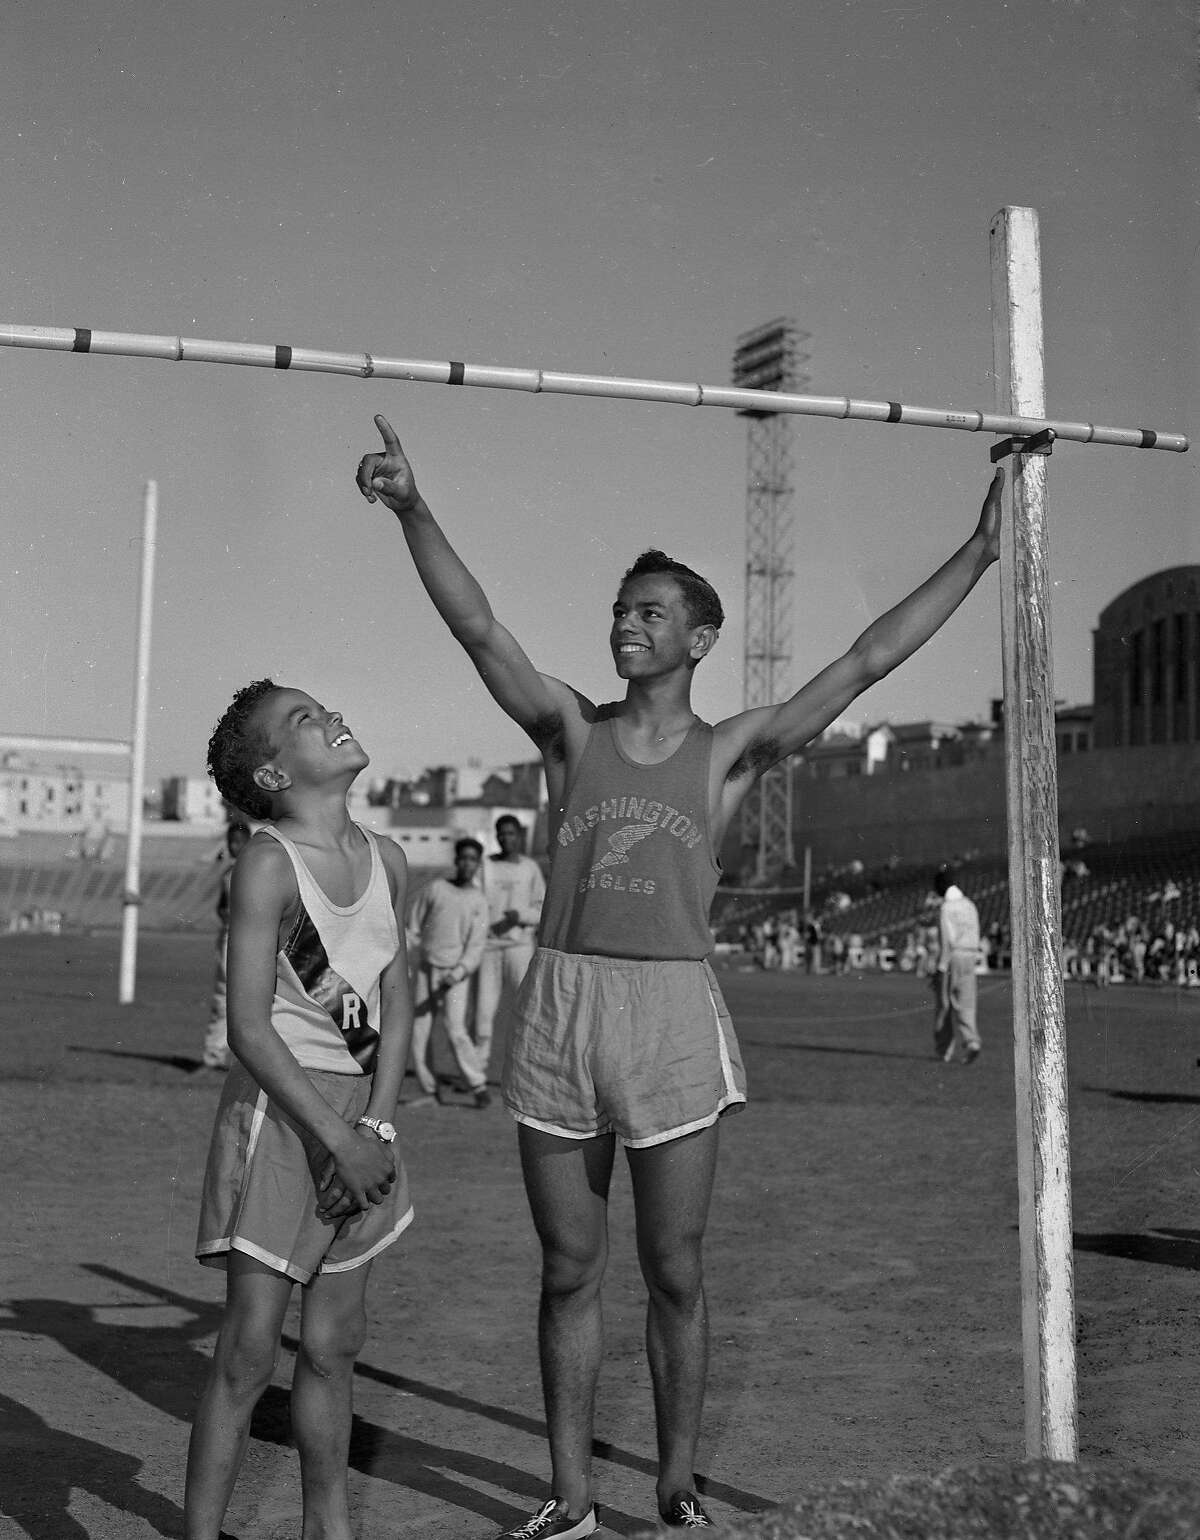 Johnny Mathis and his brother Ralph Mathis inspecting the bar for a try at the high jump at Kezar stadium 04/18/1953 From the negative .. photographer not identified